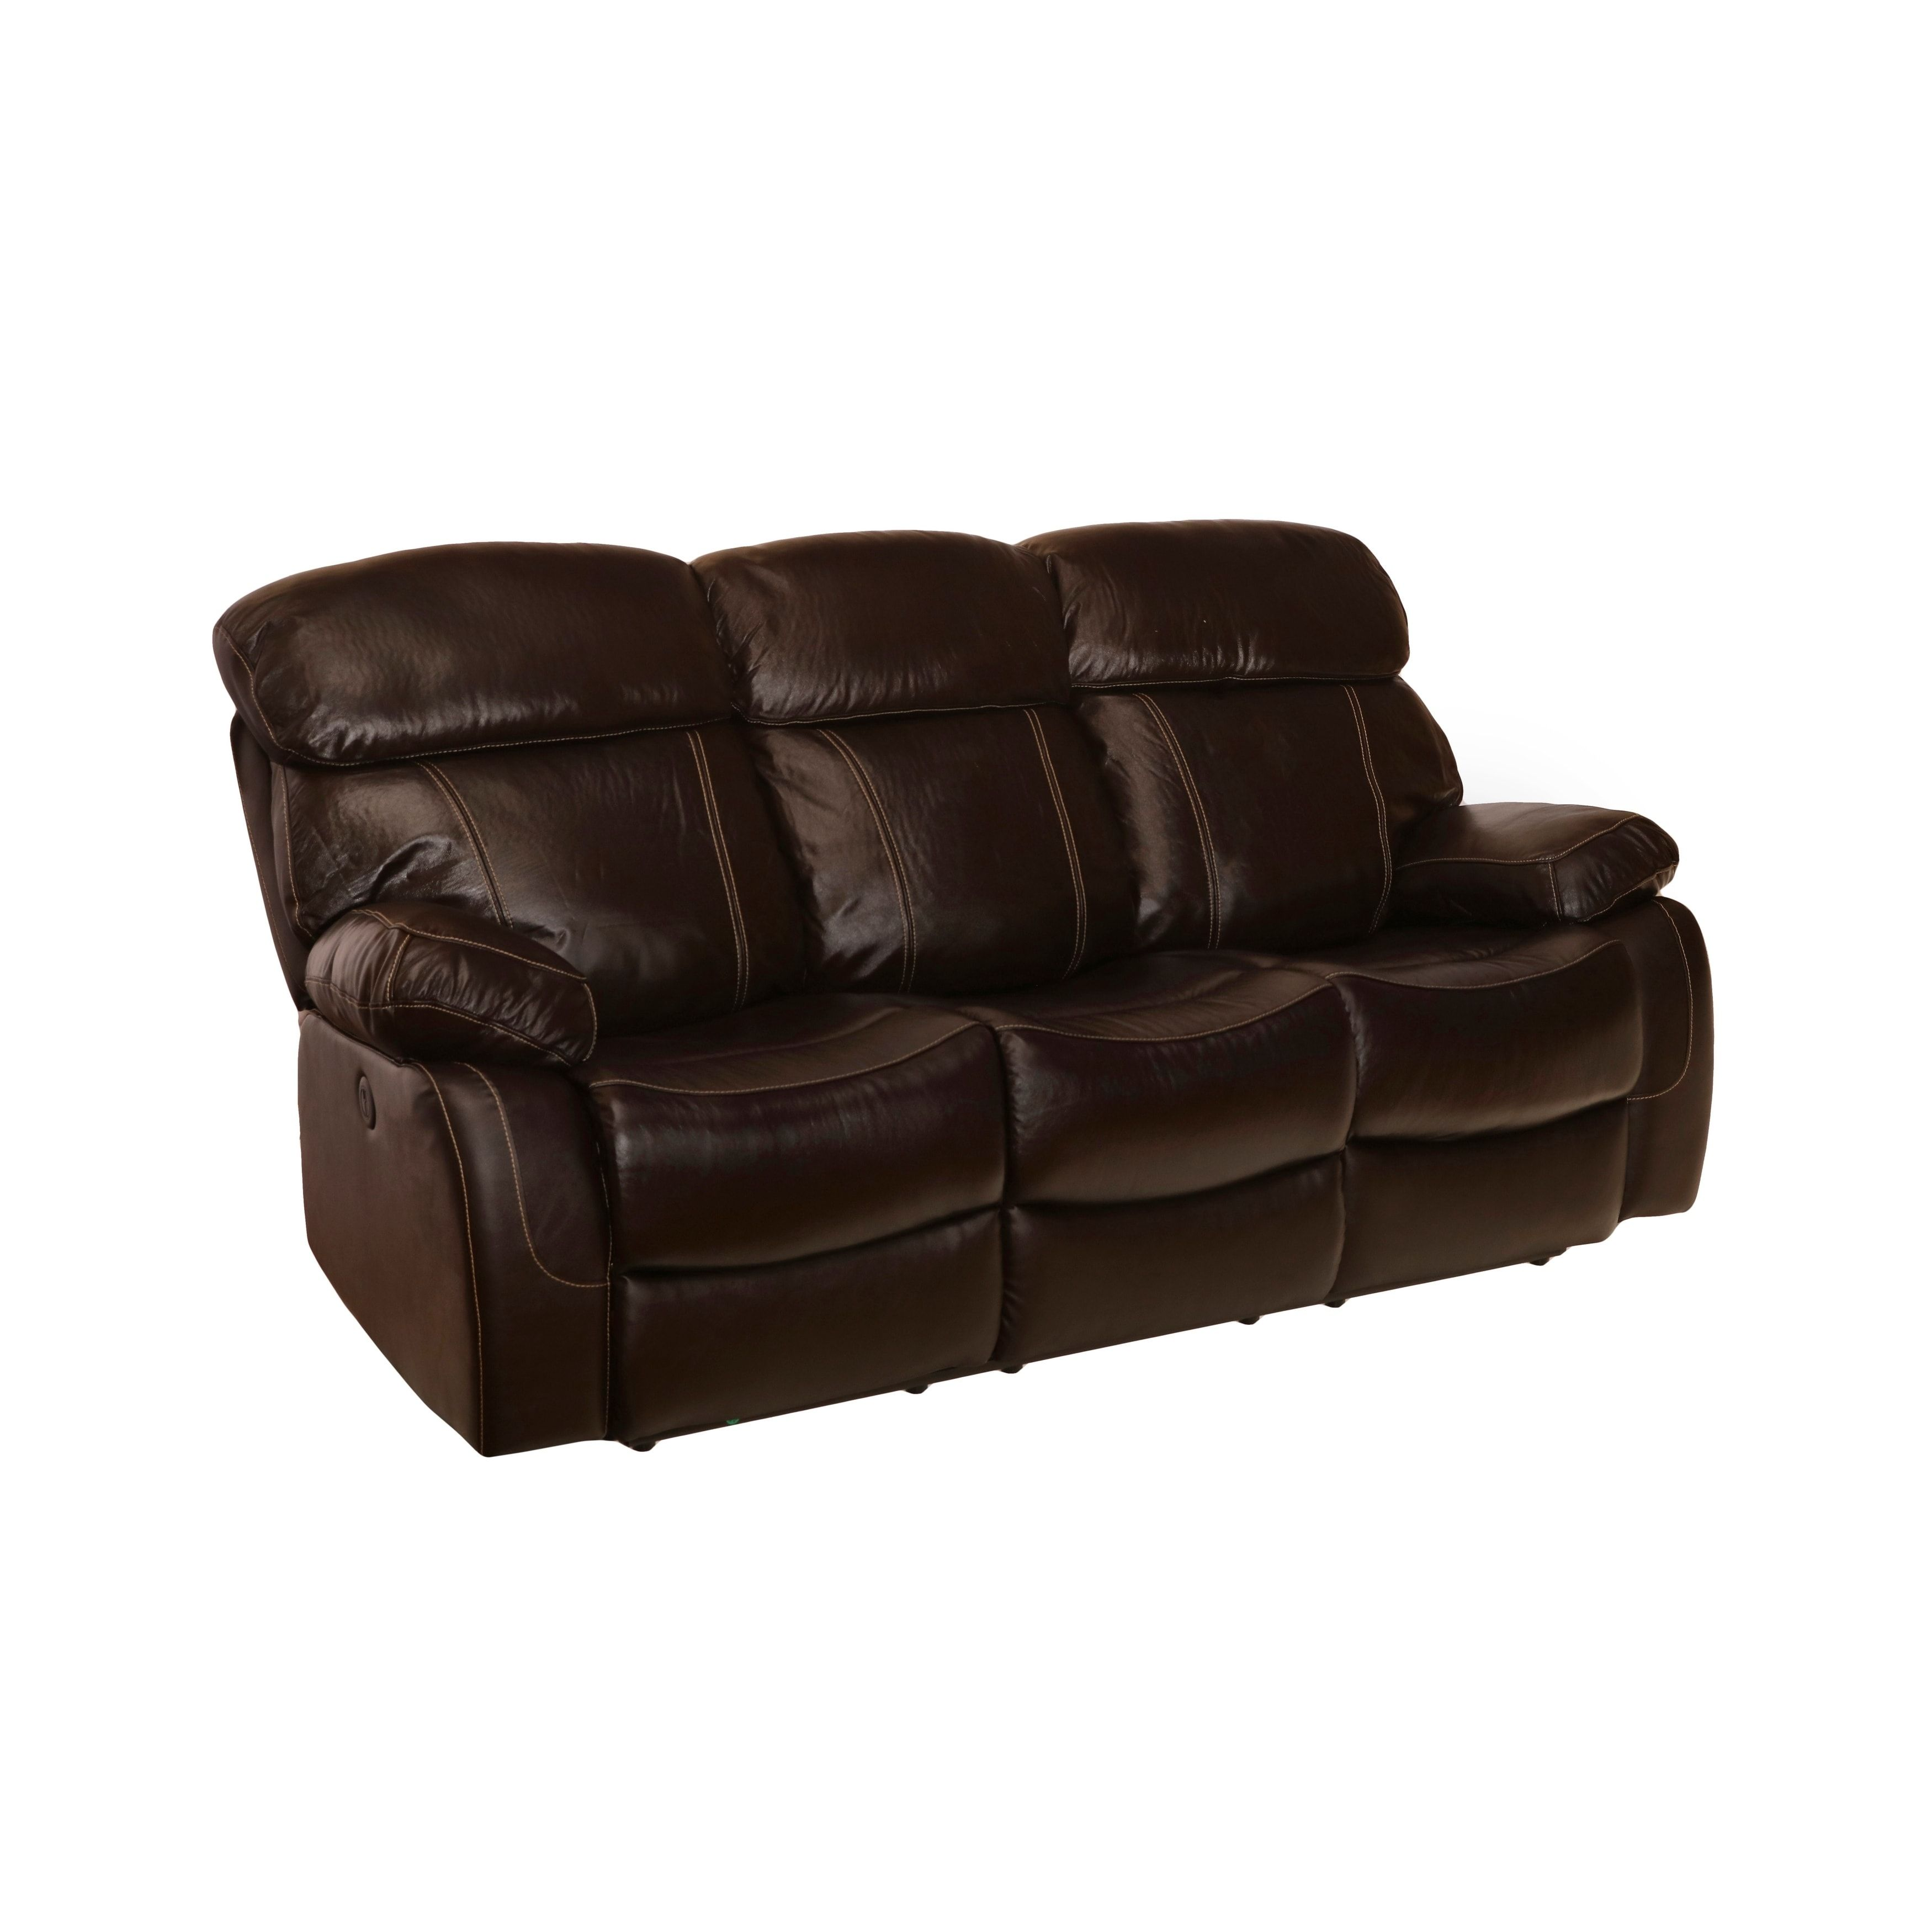 common home coleman manual power brown top grain leather reclining rh pinterest com riley top-grain leather sofa and recliner bundle riley top-grain leather sofa and recliner bundle